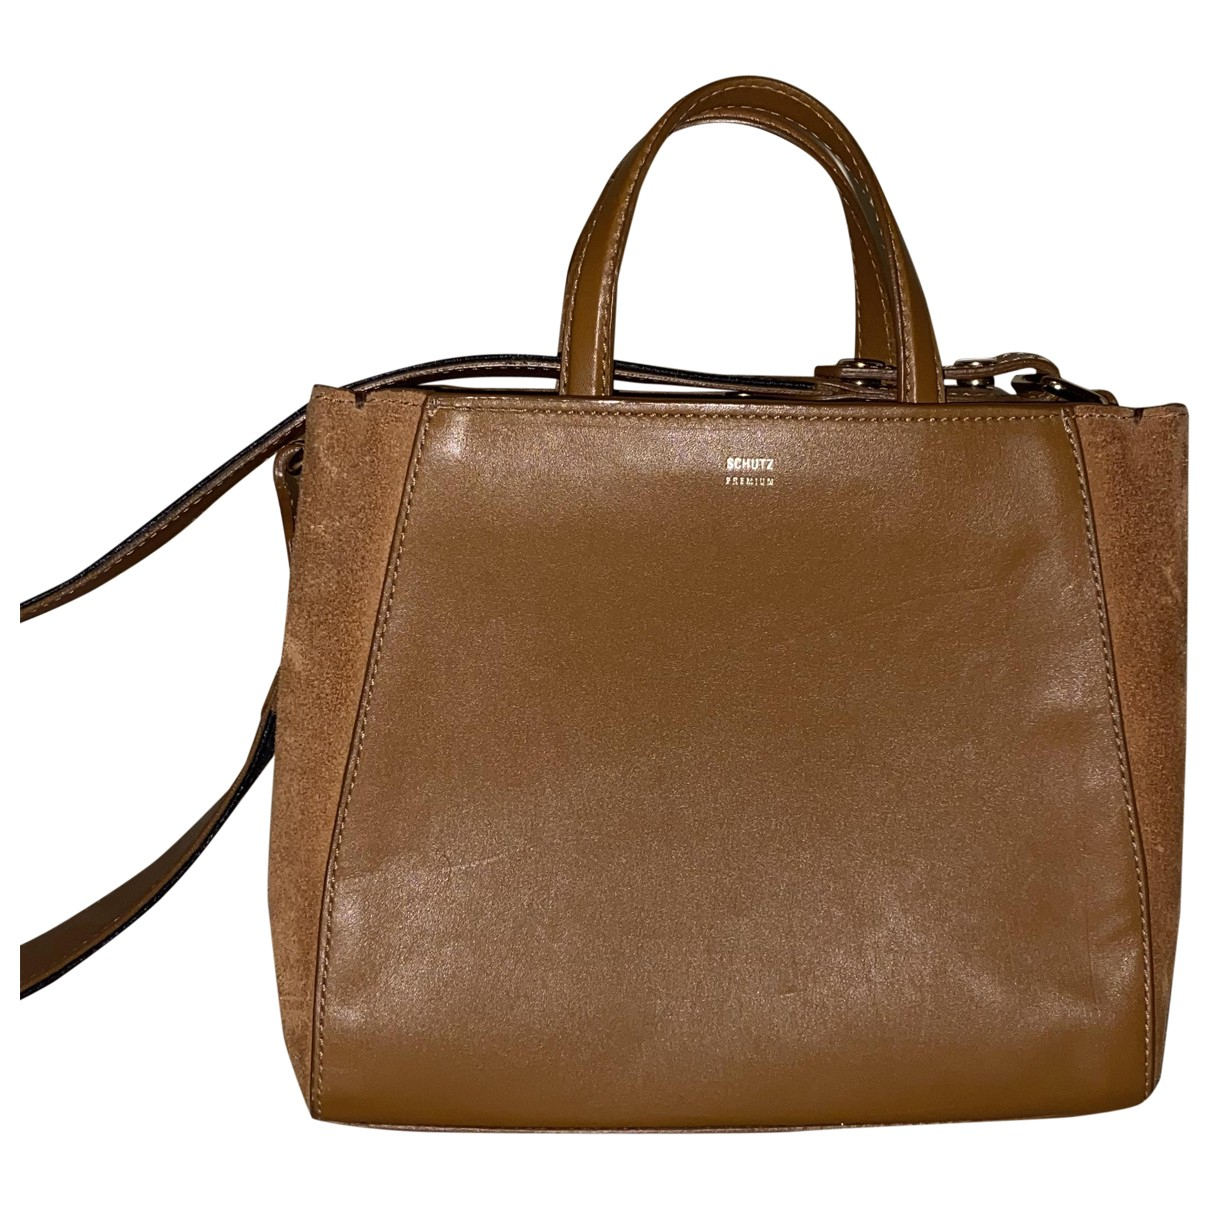 Schutz \N Brown Leather handbag for Women \N